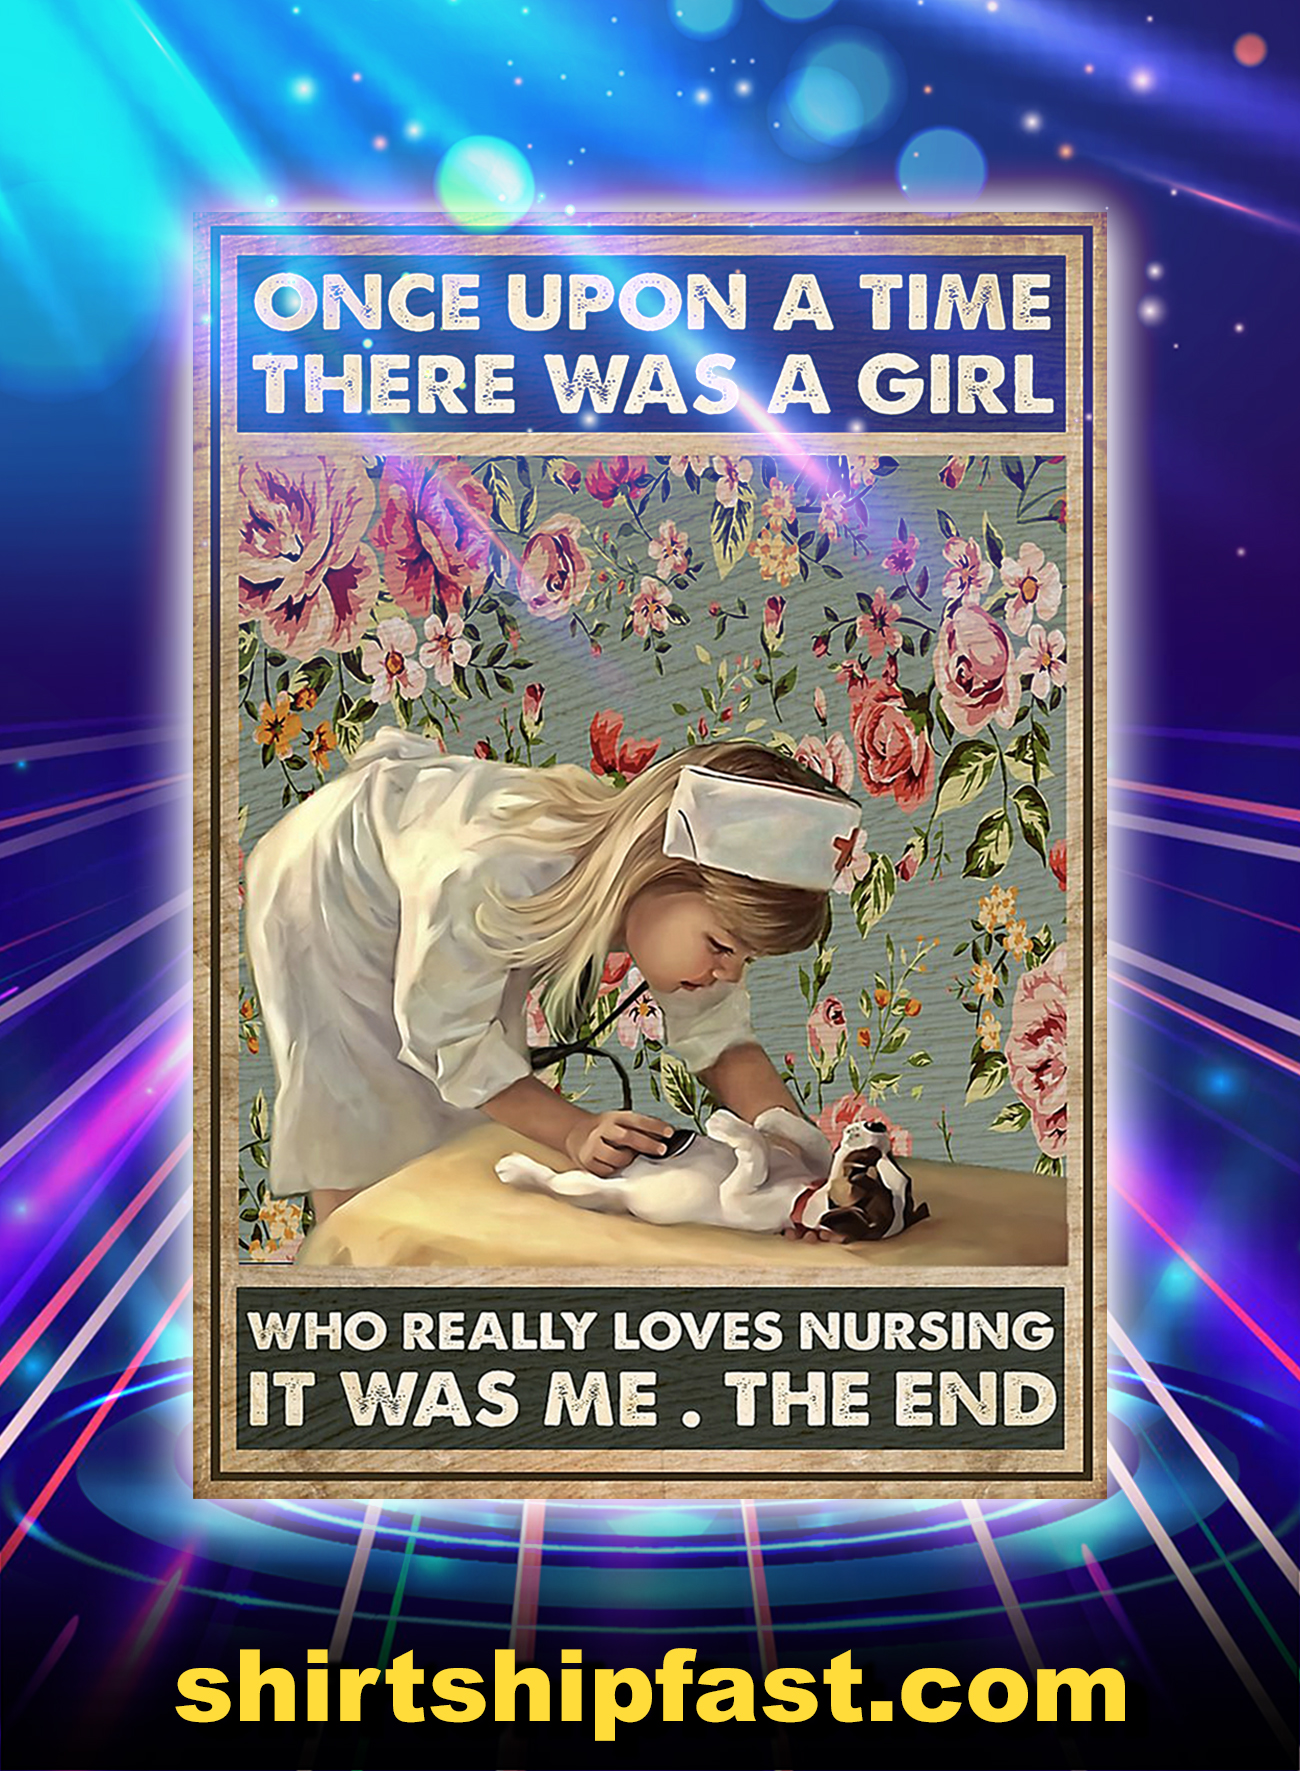 Once upon a time there was a girl who really loves nursing poster - A1